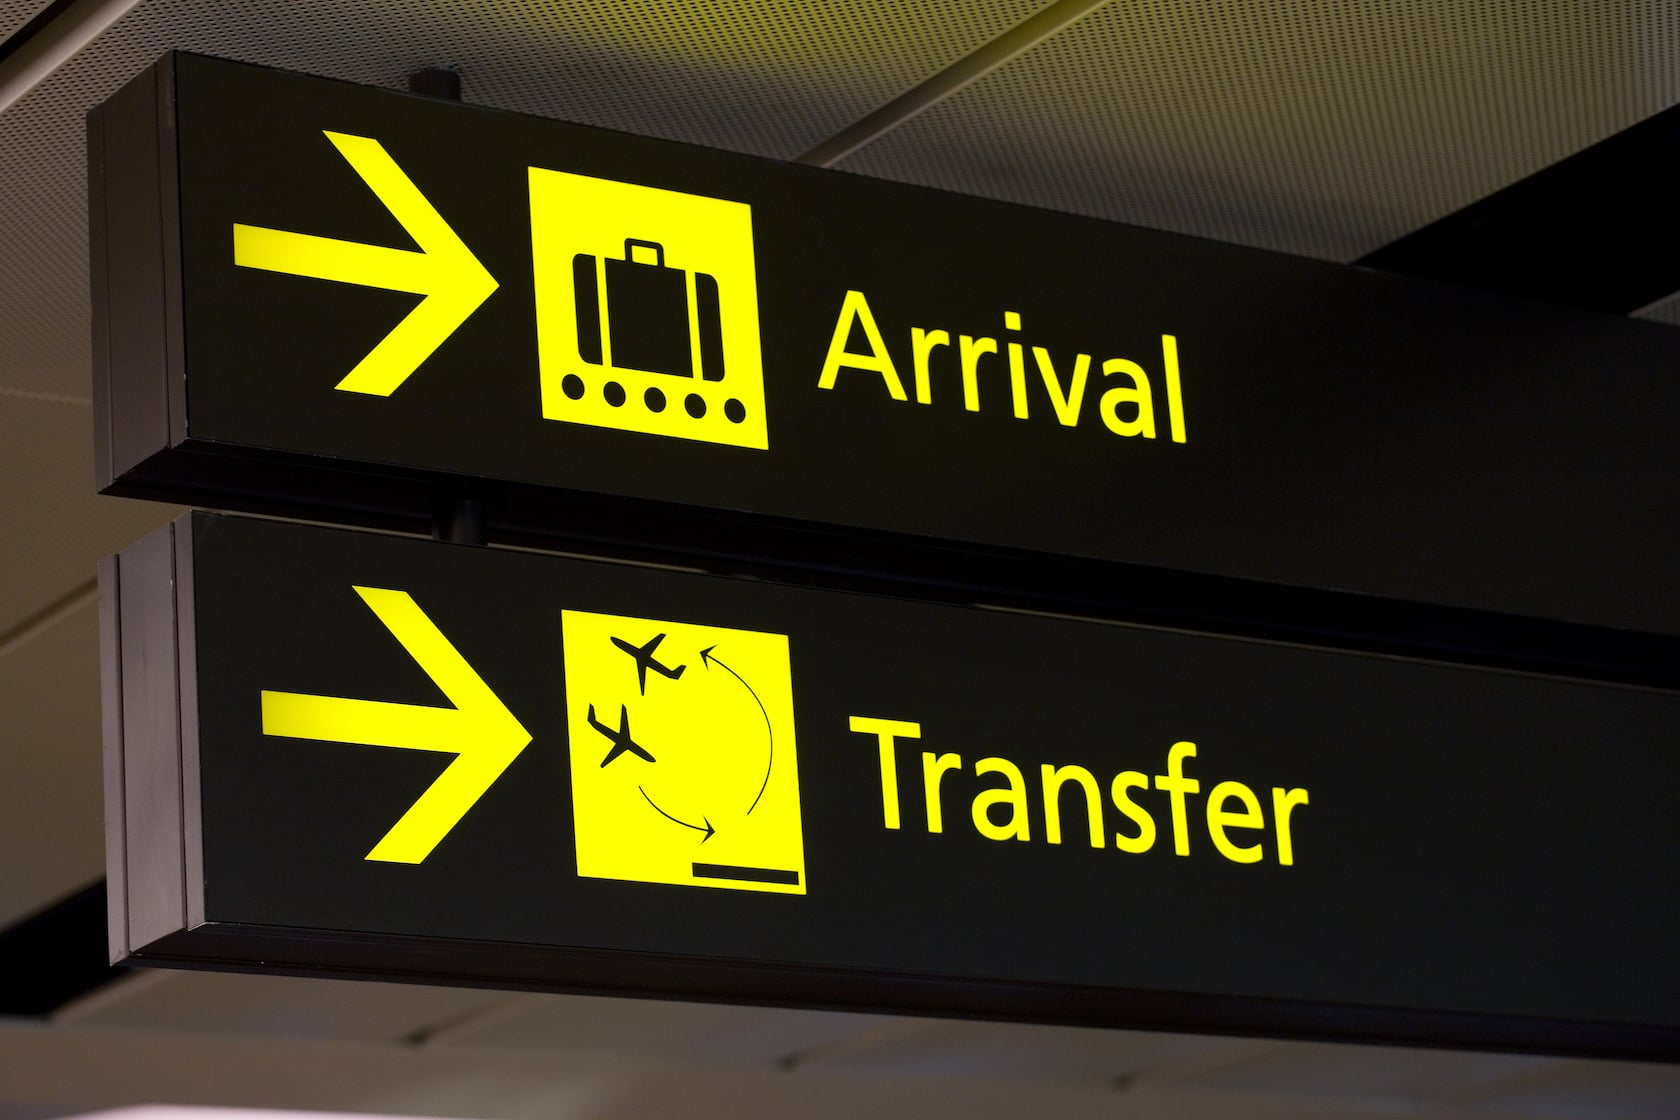 The arrival and transfer signs of an airport. Yellow fonts written against a black surface.